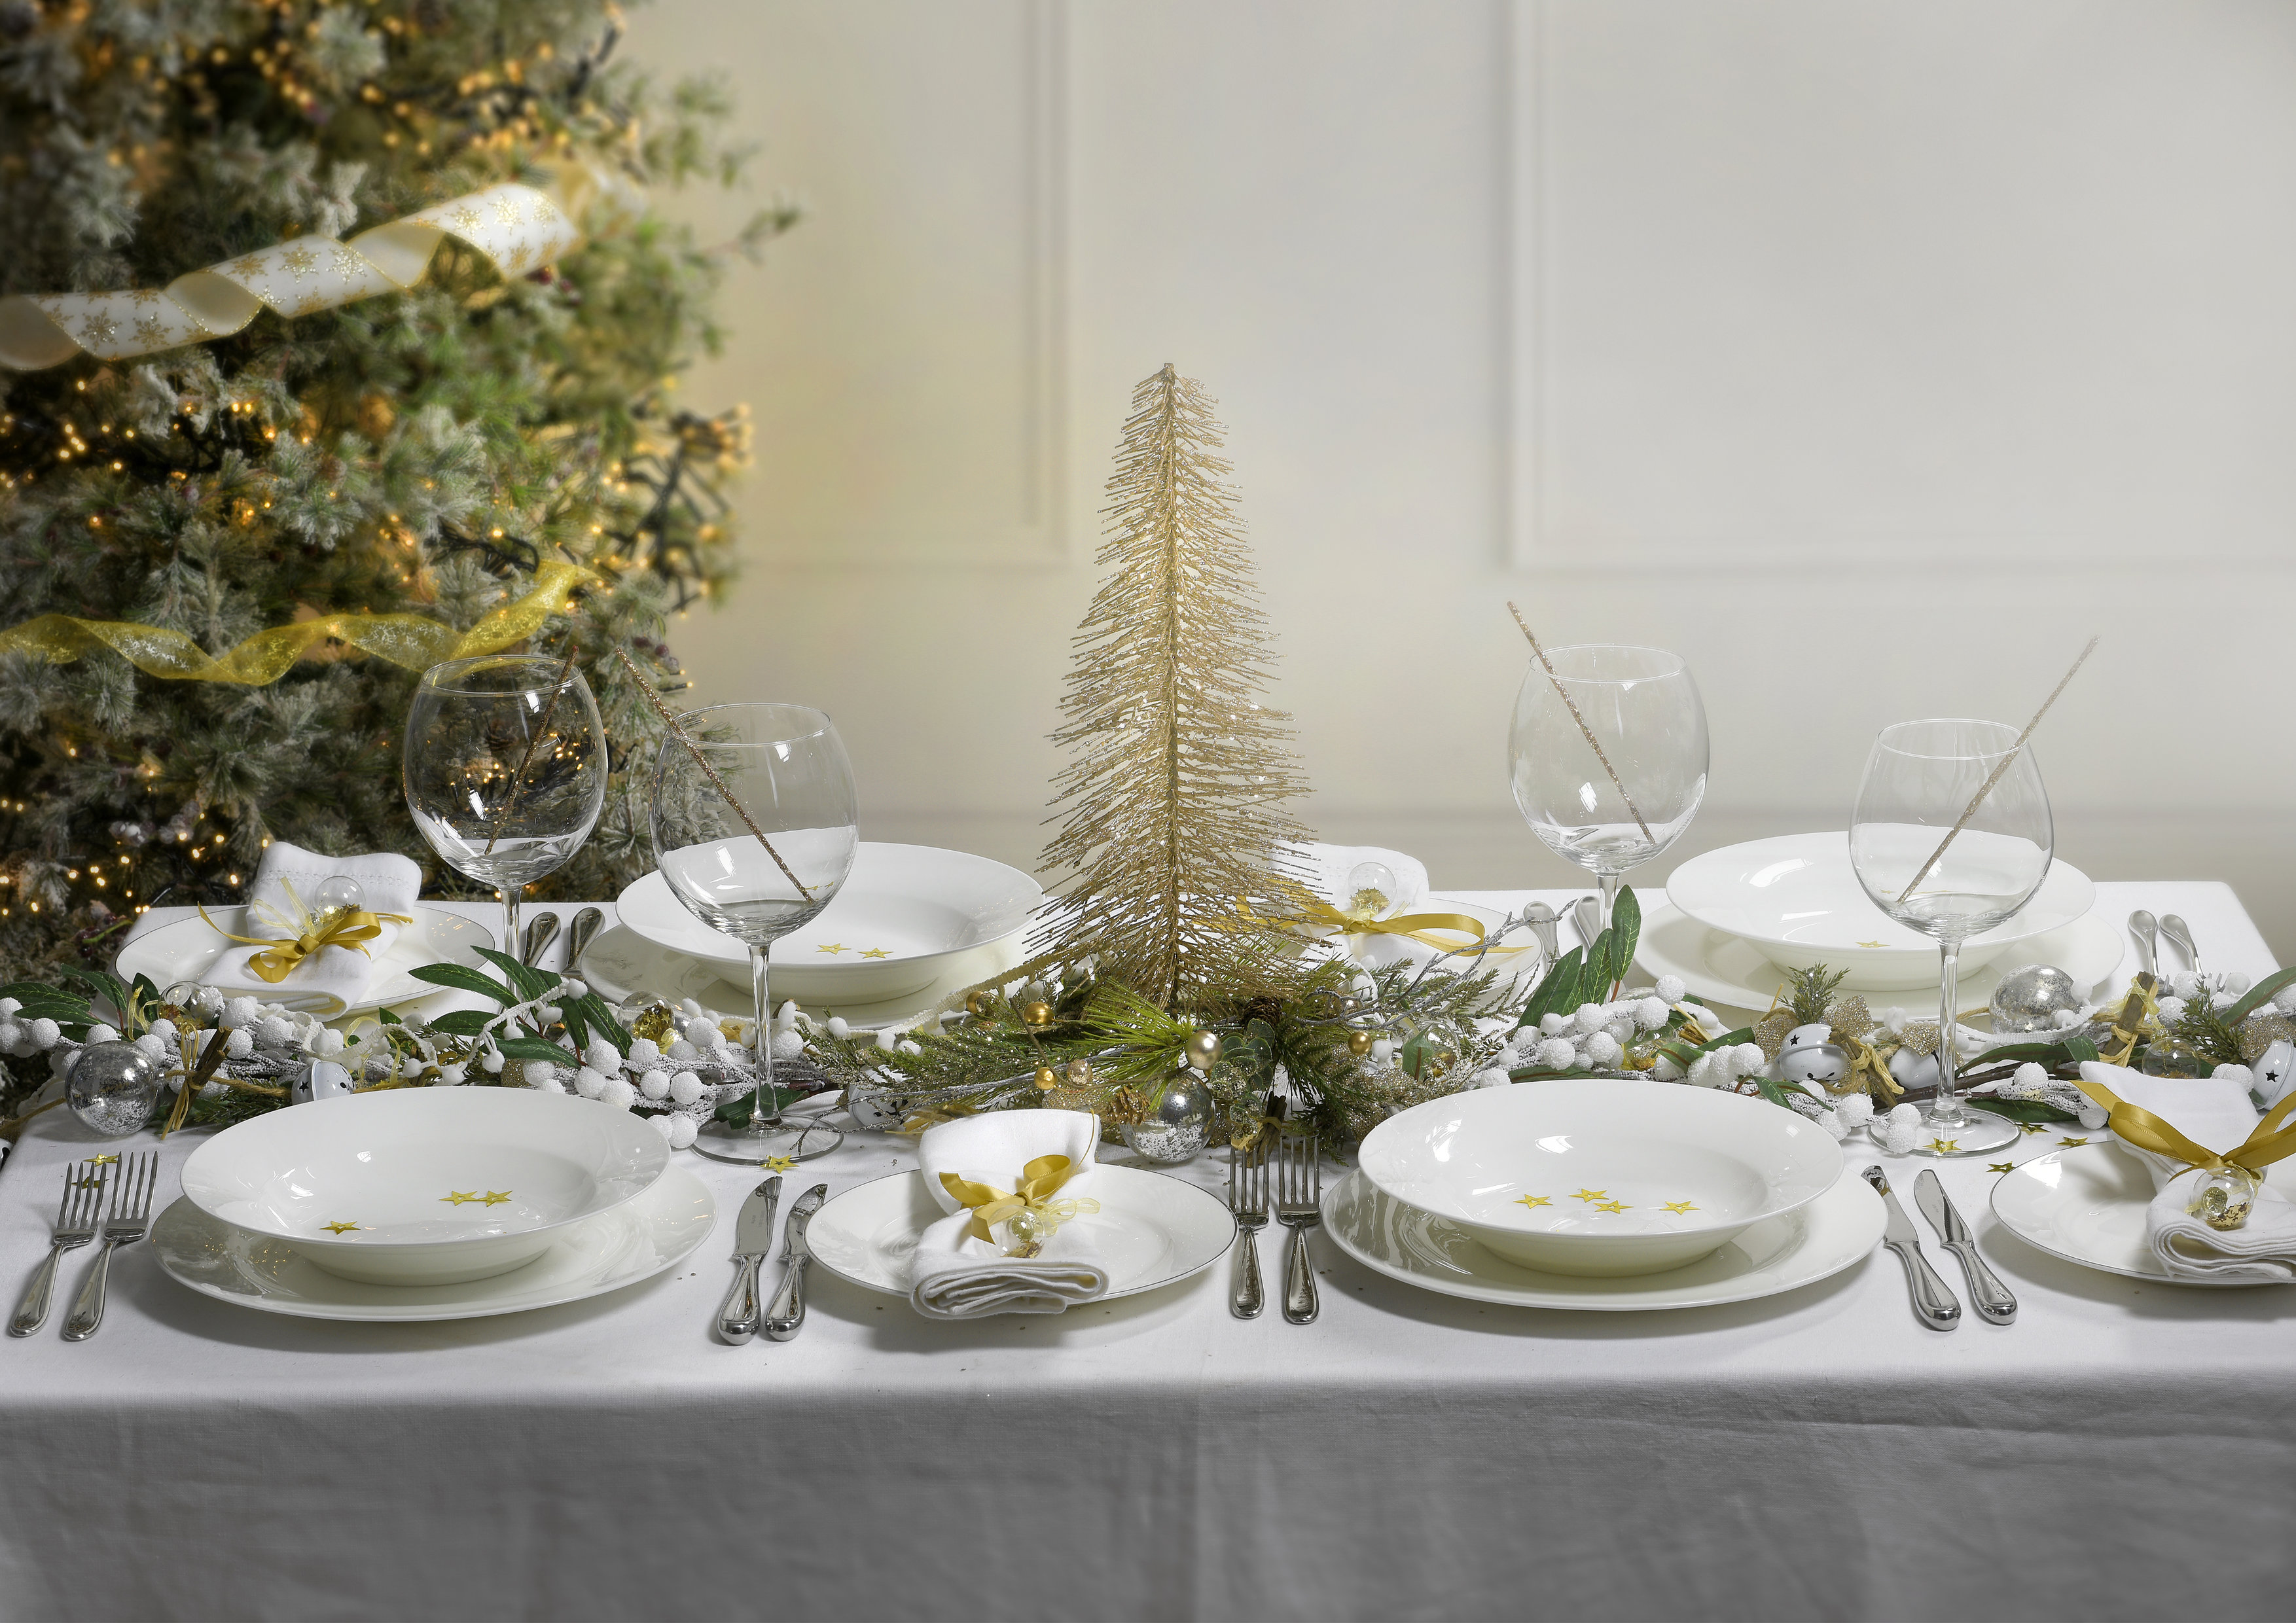 Christmas Table Ideas Using White Tableware